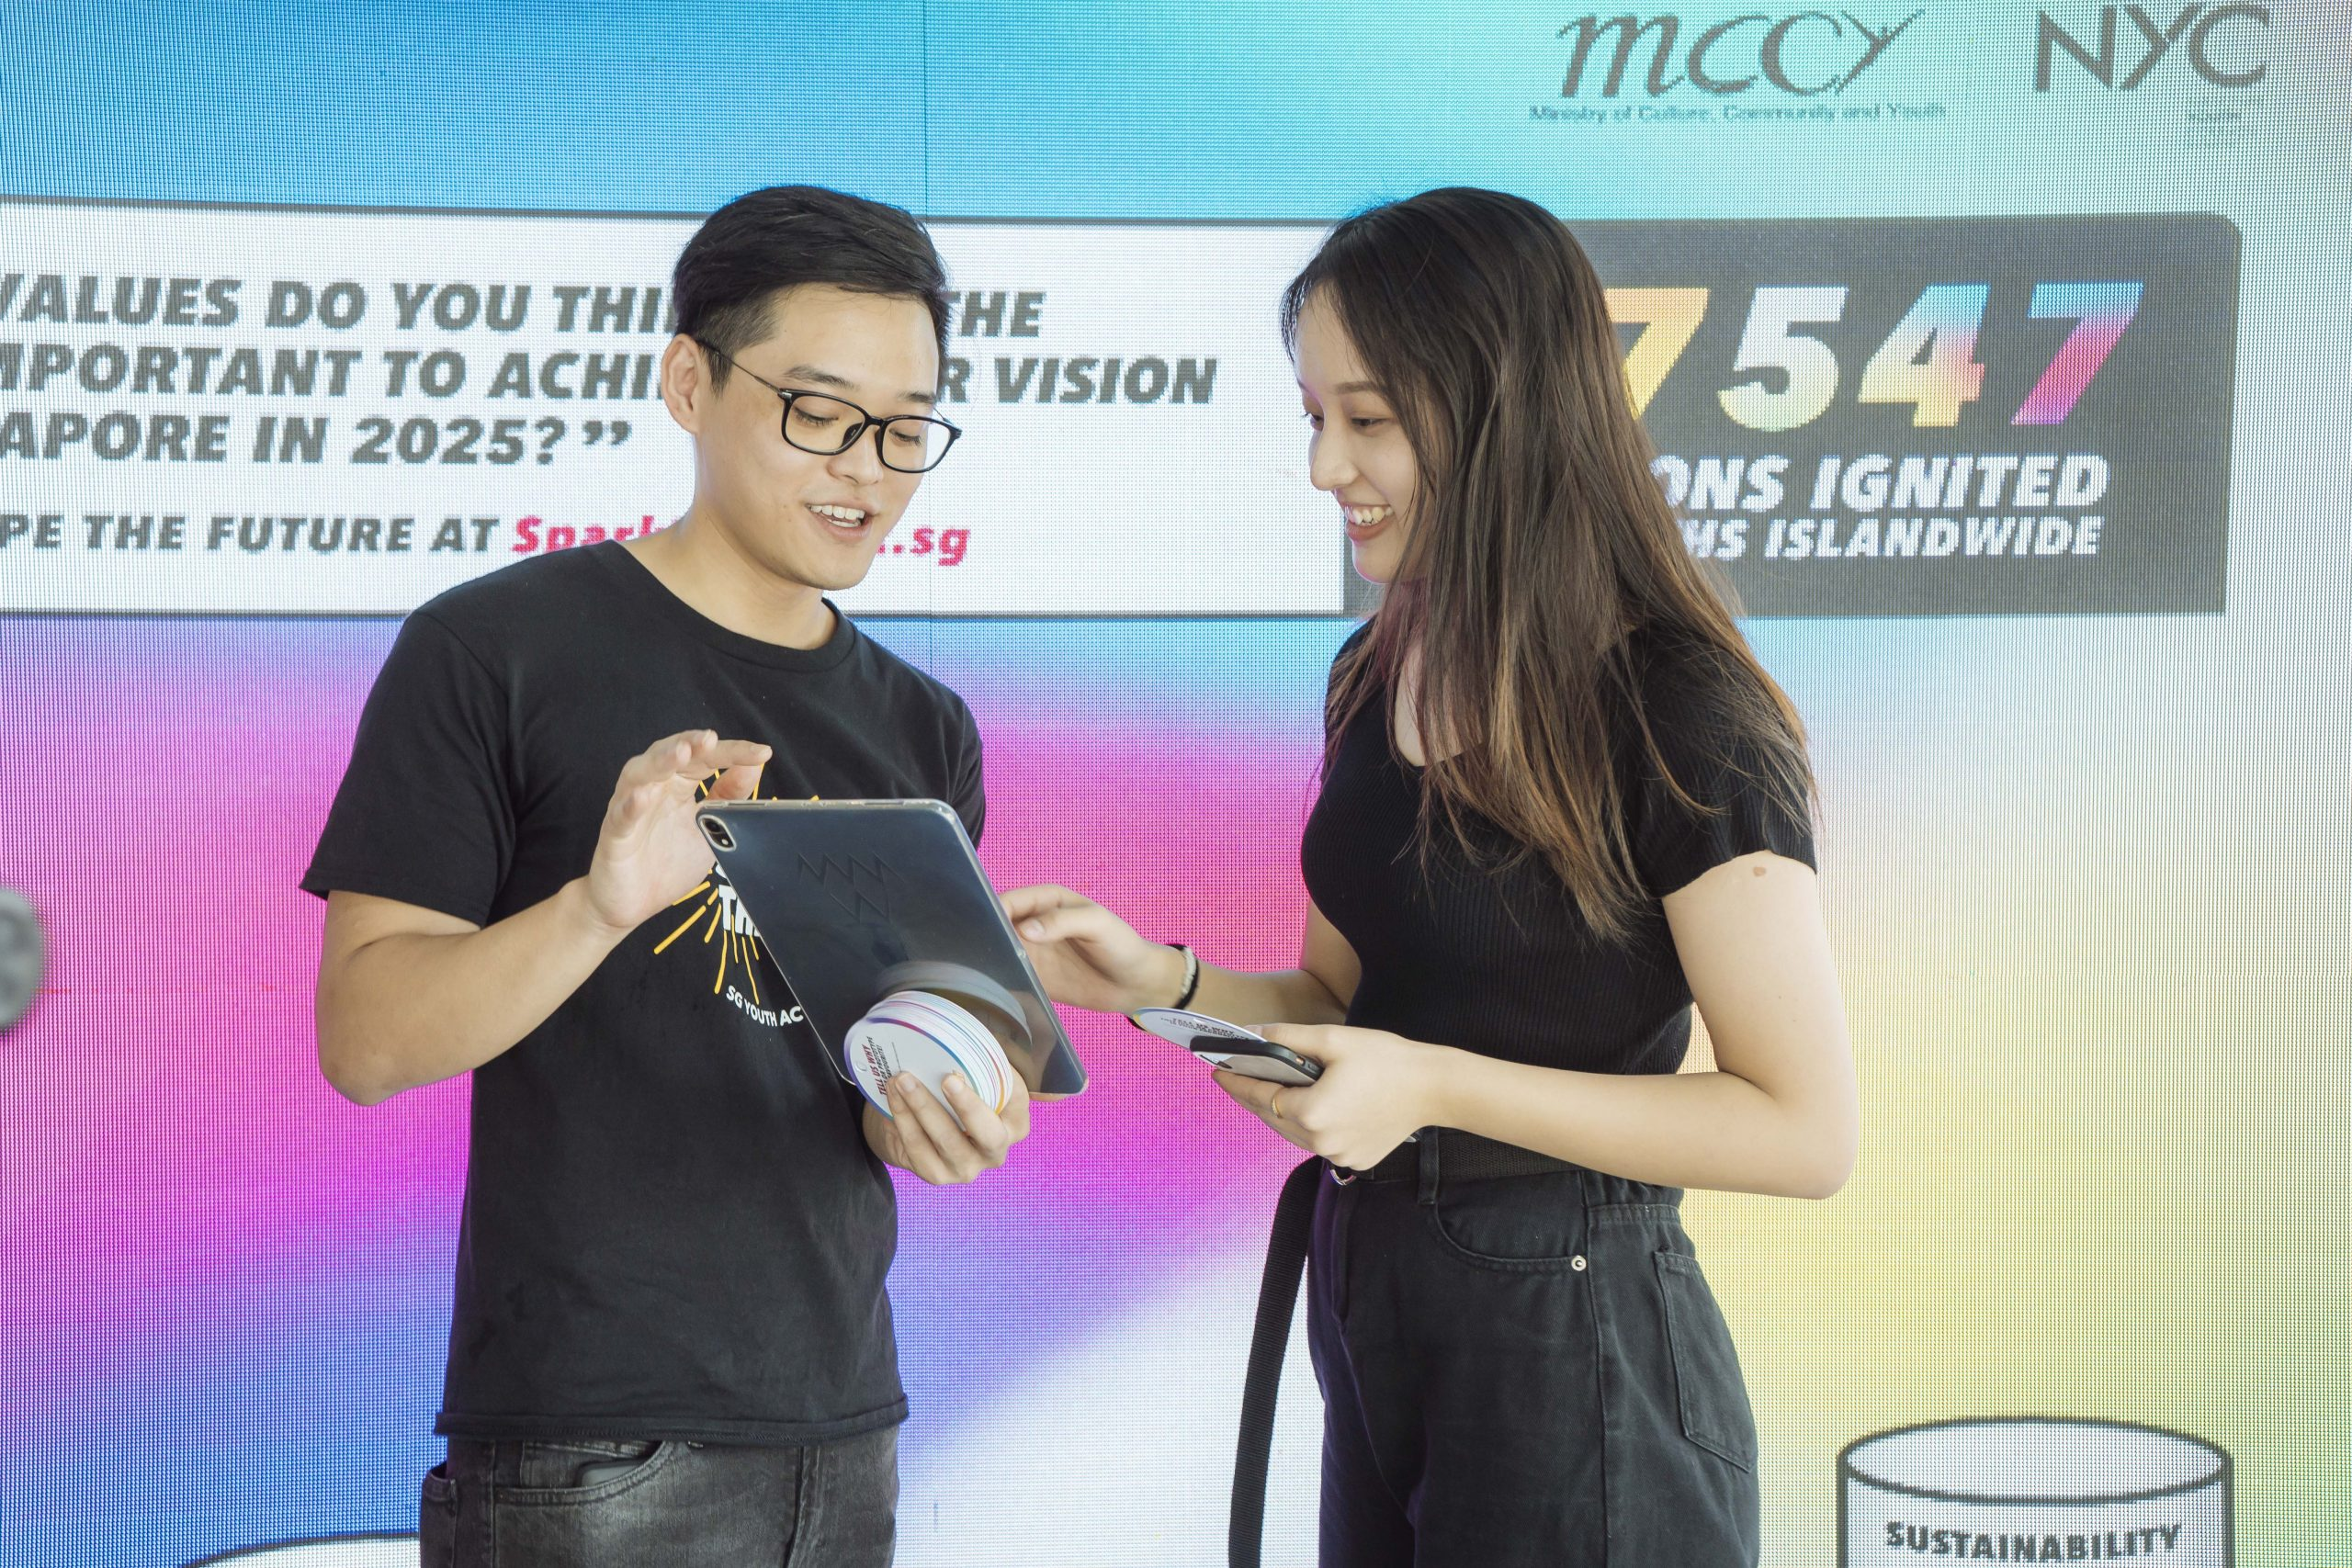 A MCCY ambassador explains to a girl how the MCCY Network Voting System works